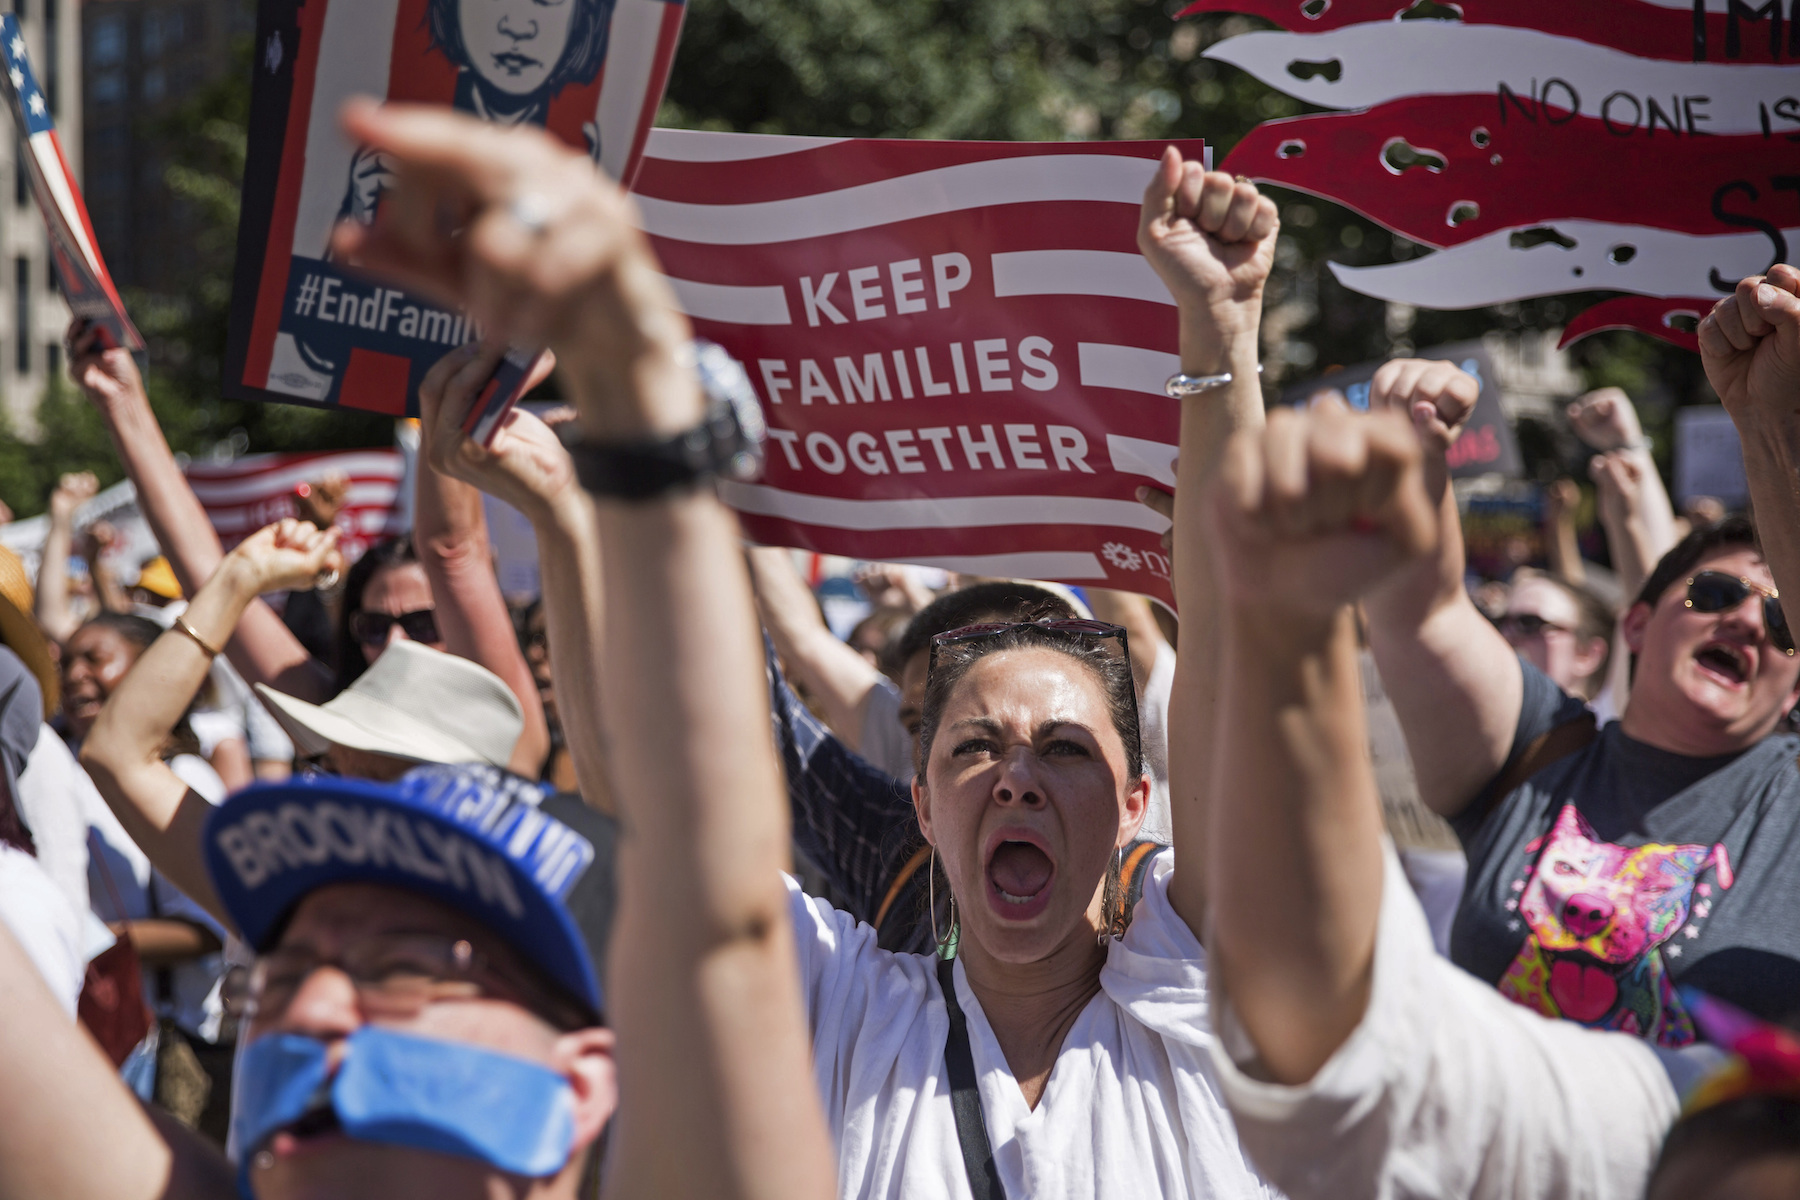 <div class='meta'><div class='origin-logo' data-origin='AP'></div><span class='caption-text' data-credit='AP Photo/Kevin Hagen'>Activists shout during the rally to protest the Trump administration's immigration policies Saturday, June 30, 2018, in New York, New York.</span></div>